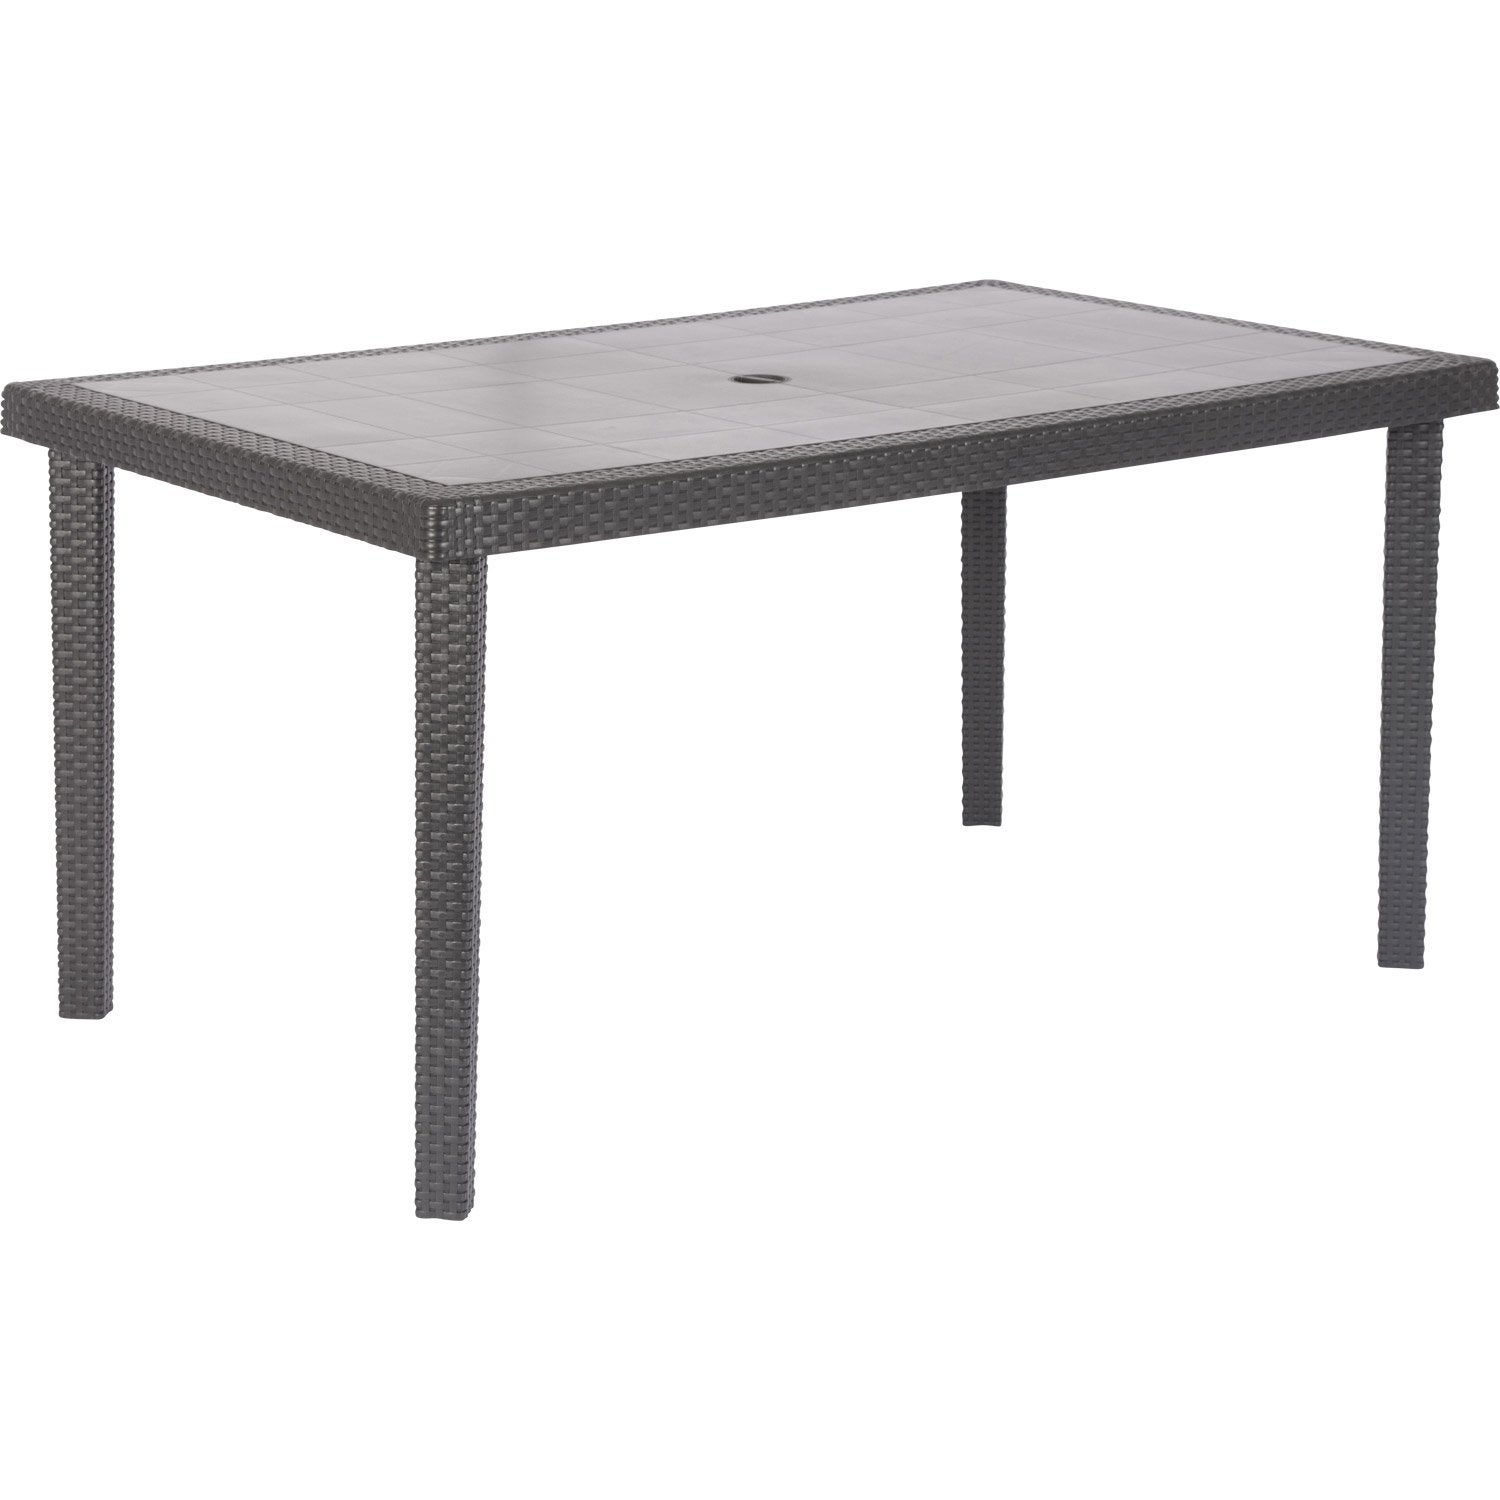 Table de jardin boh me rectangulaire anthracite 6 personnes leroy merlin Table de jardin plastique taupe